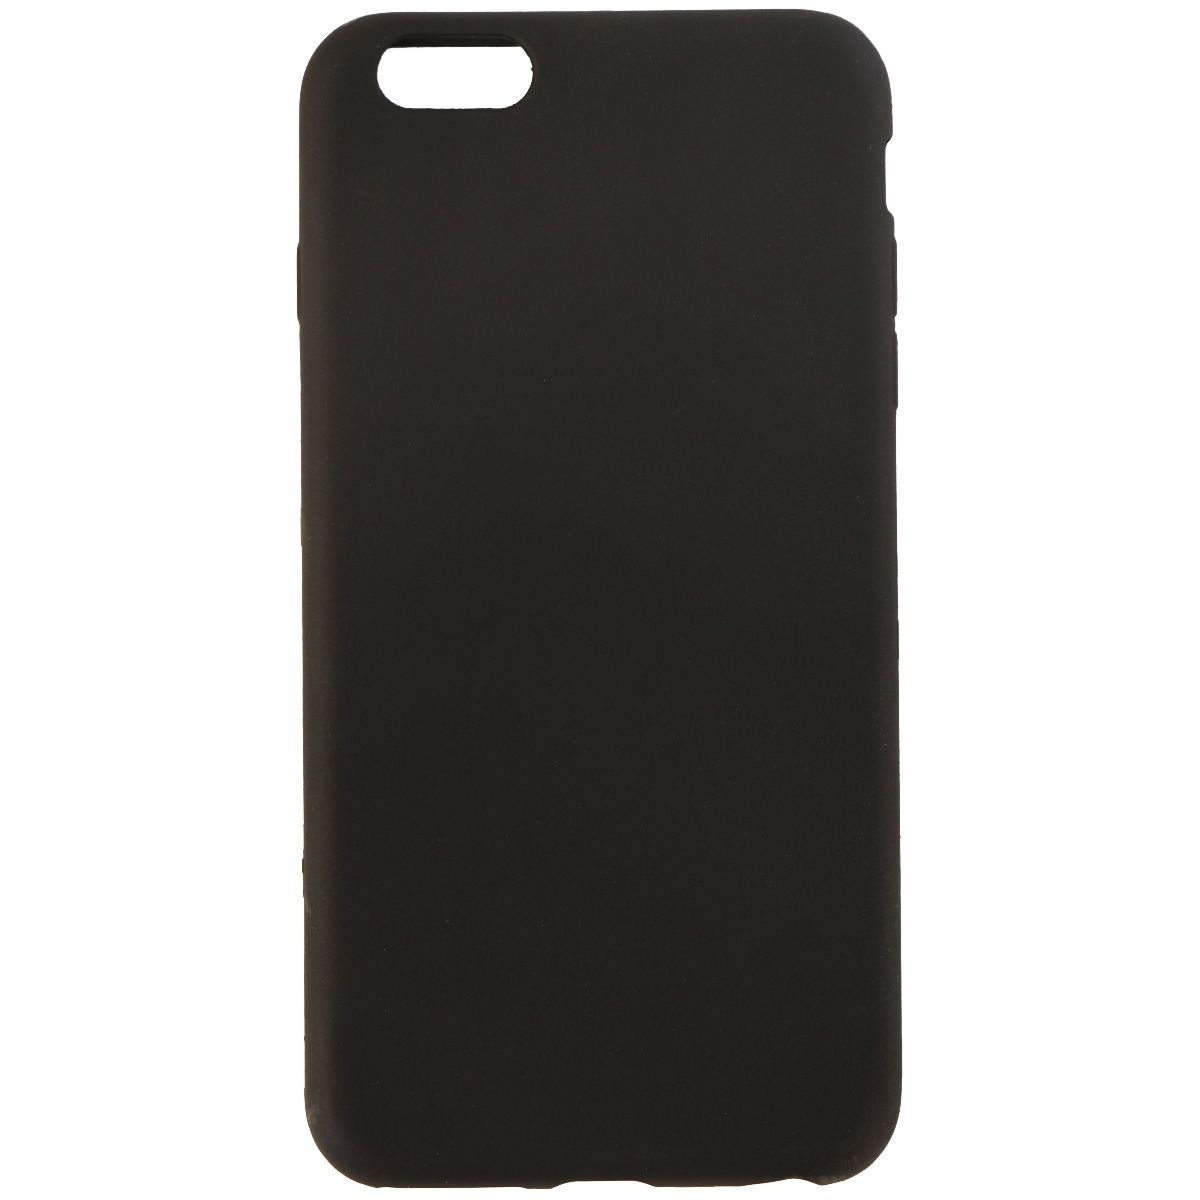 new style e0b25 4e6ca Insignia Soft Shell Gel Case for Apple iPhone 6s Plus/6 Plus - Black